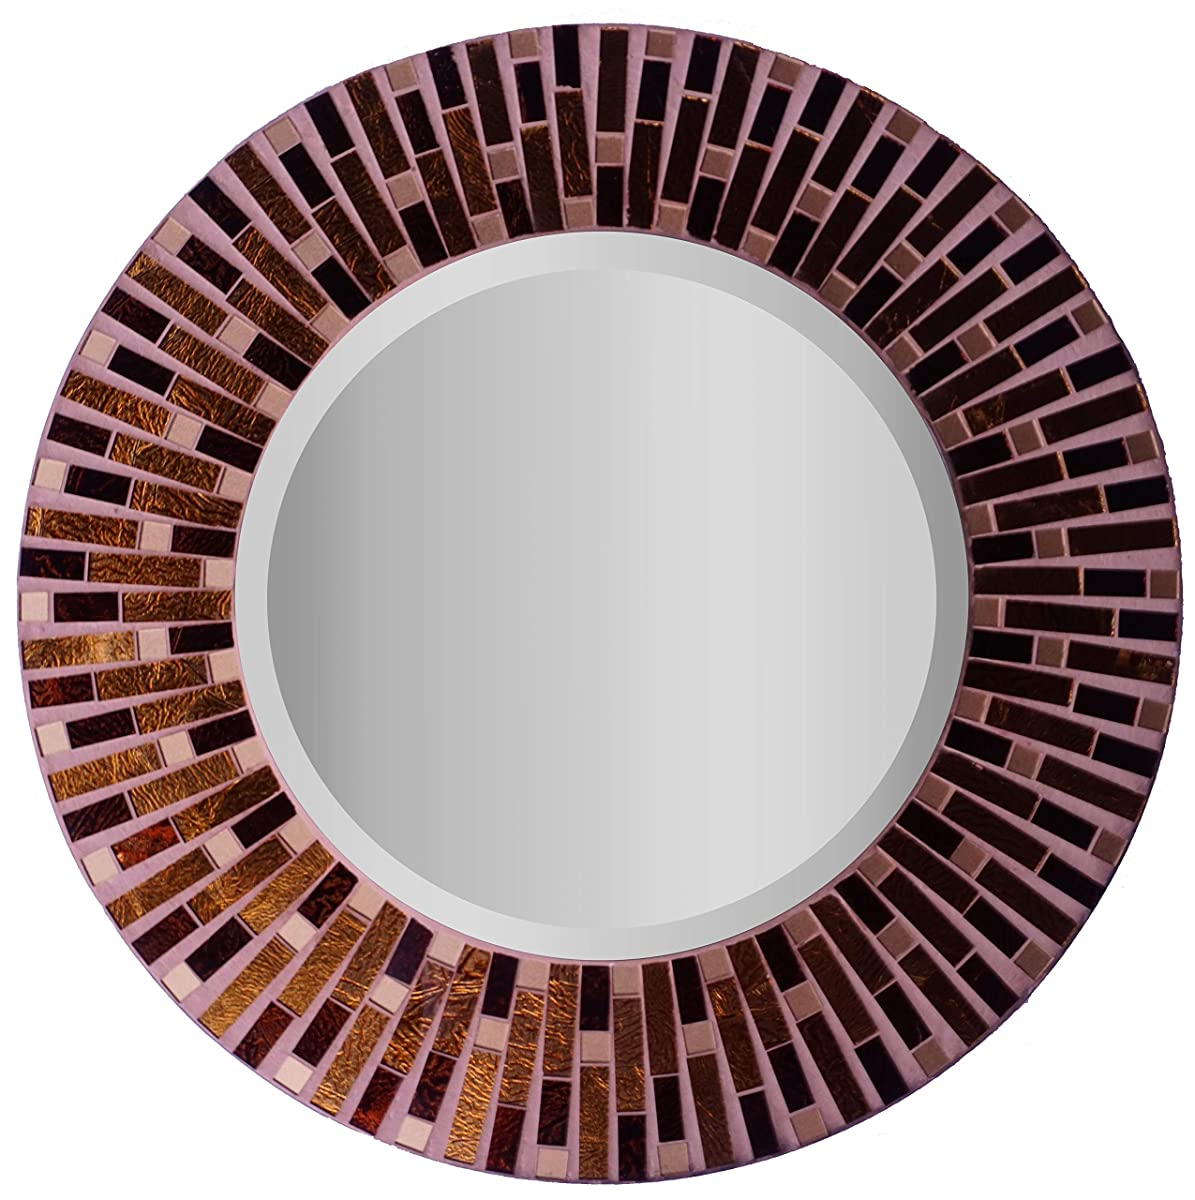 "LuLu Decor, Amber Rays Mosaic Wall Mirror, Decorative Beautiful Round Beveled Wall Mirror, Frame Measures 16"", Beveled Mirror Measures 9.5"" (LP84M)"